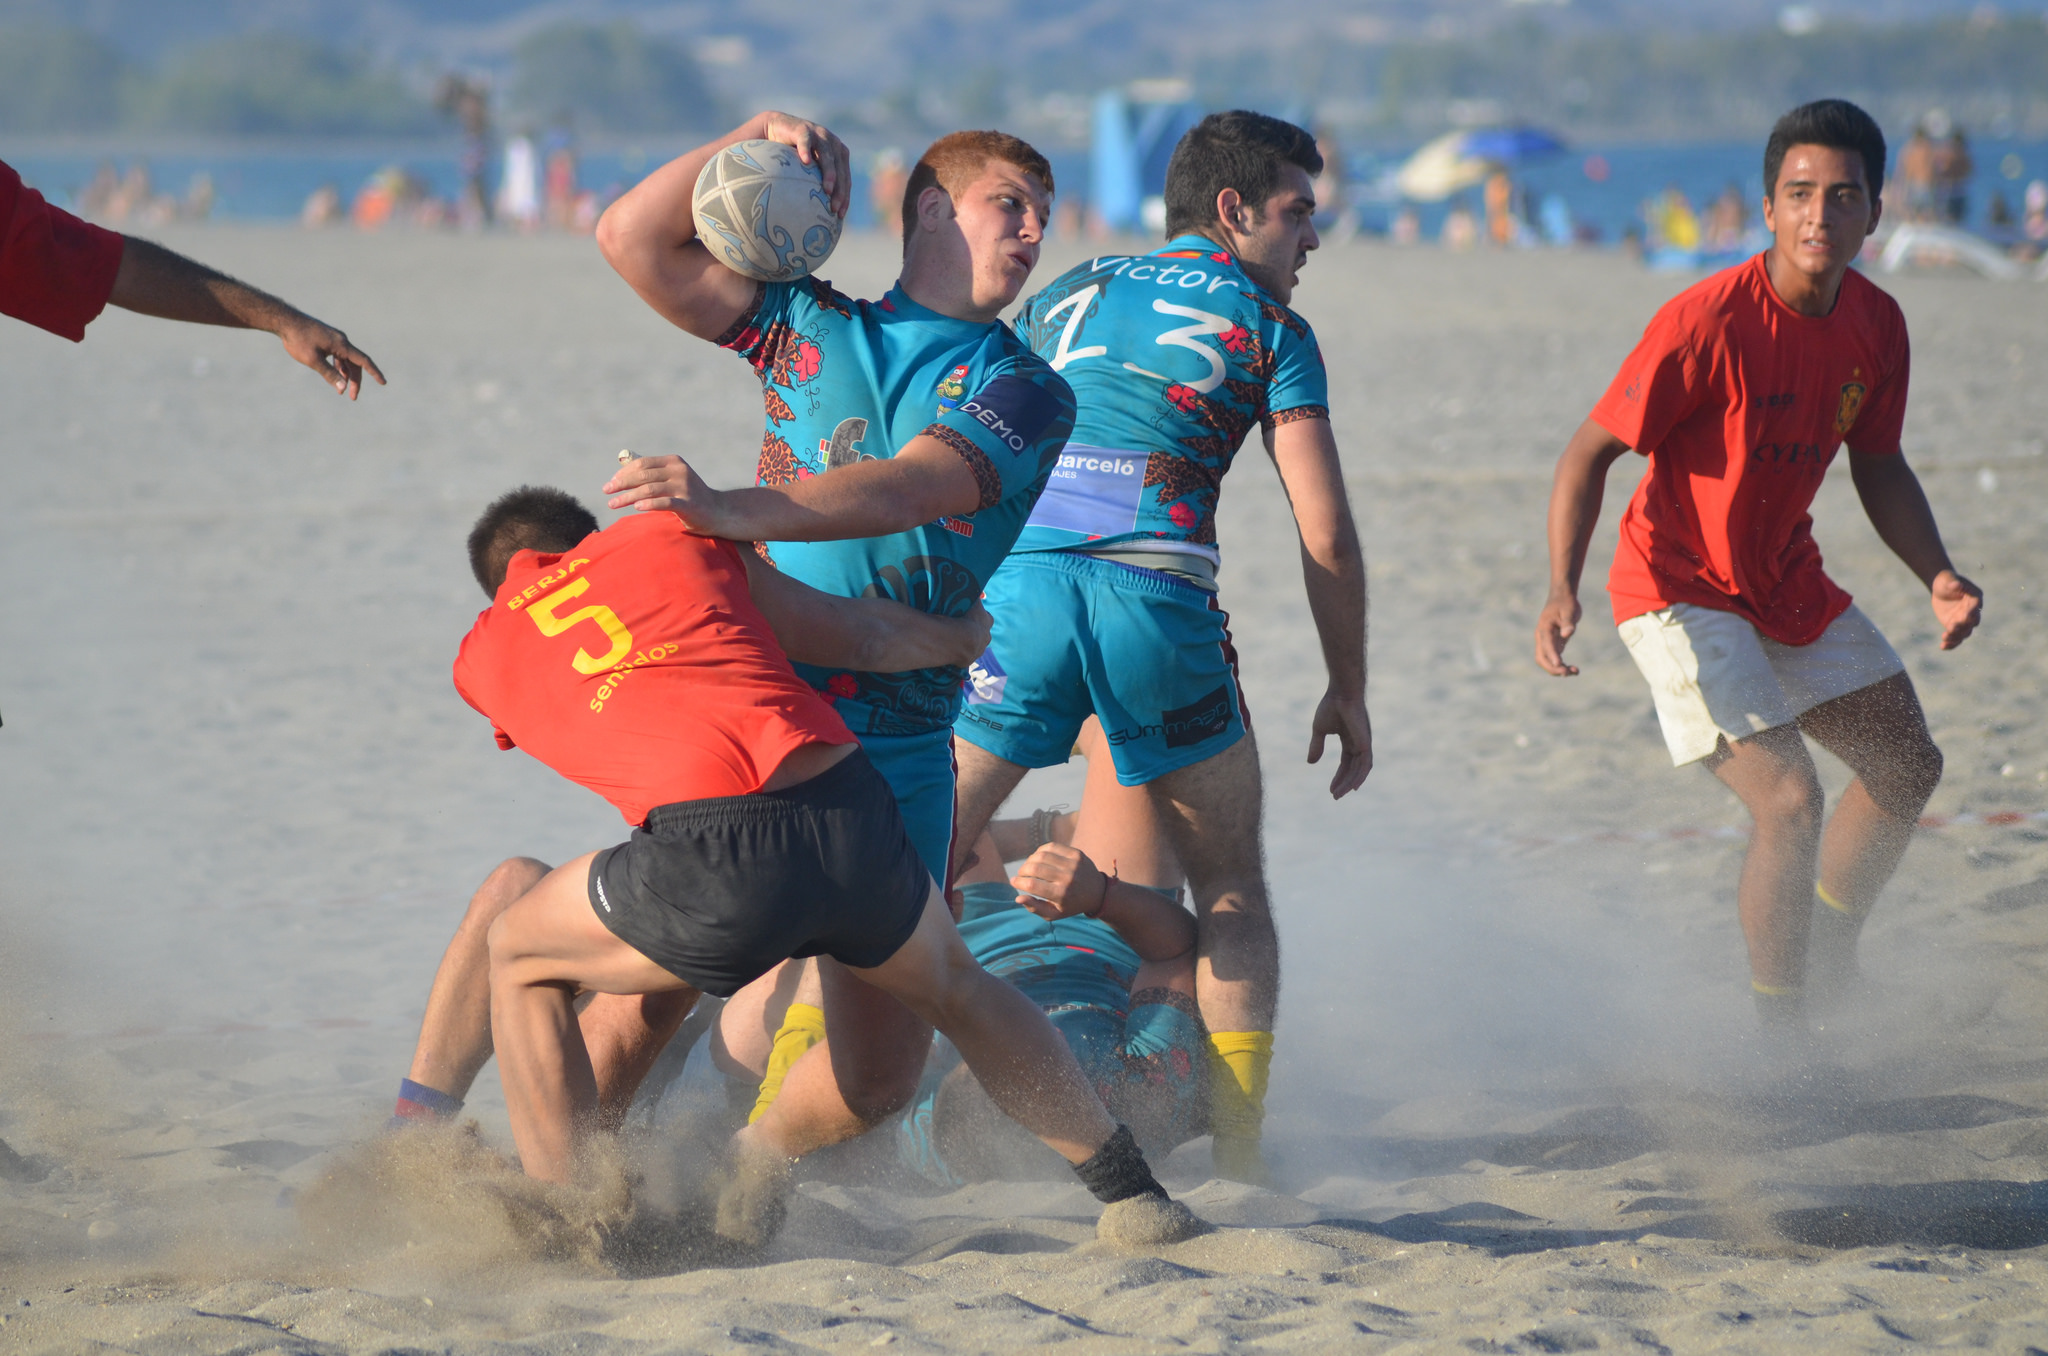 Rugby-PCRC-91